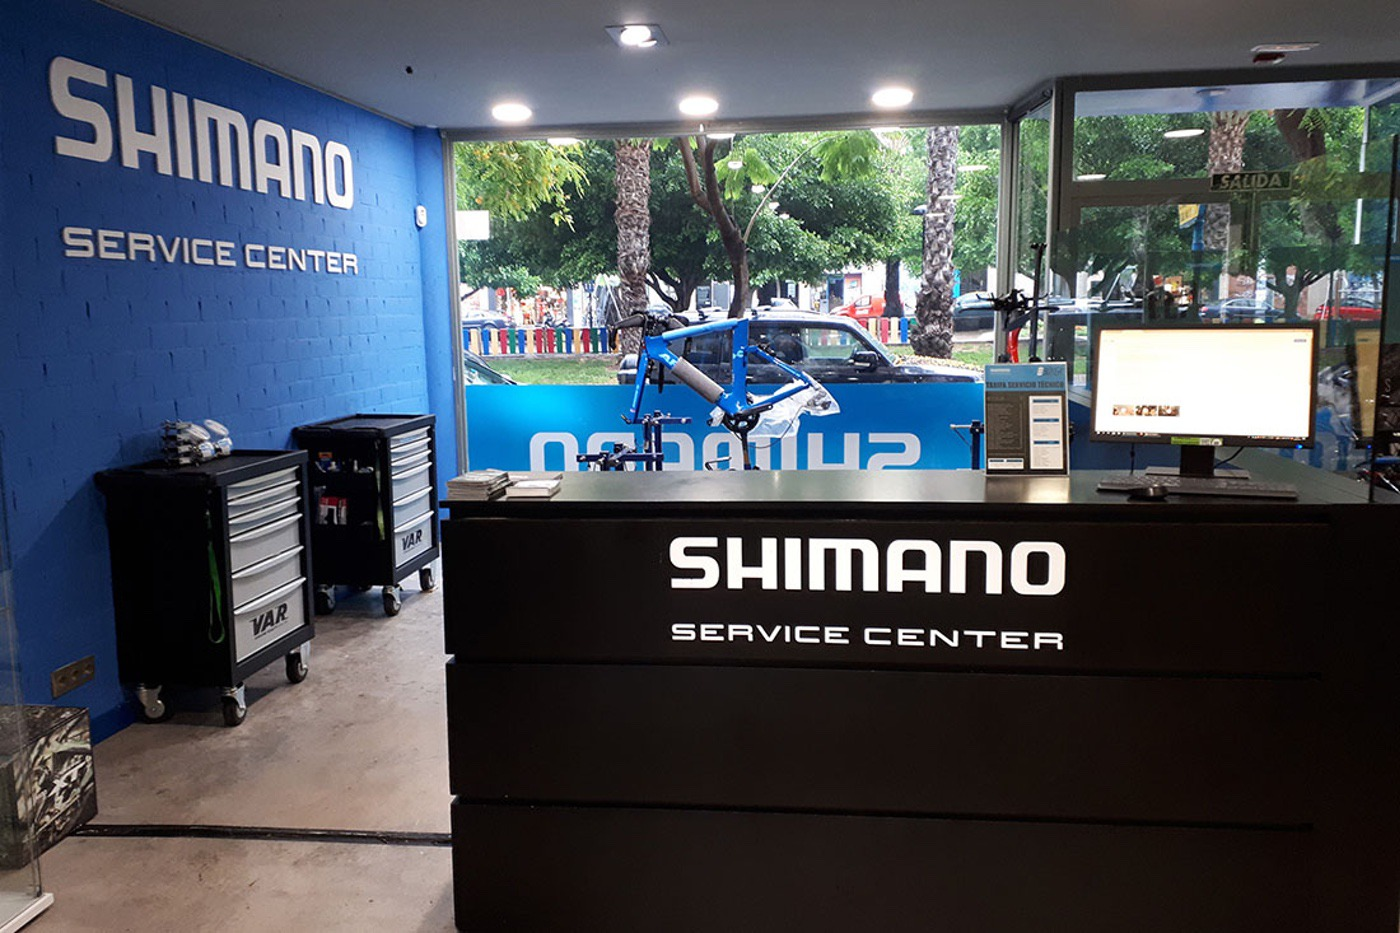 Nuevo concepto de la red Shimano Service Center